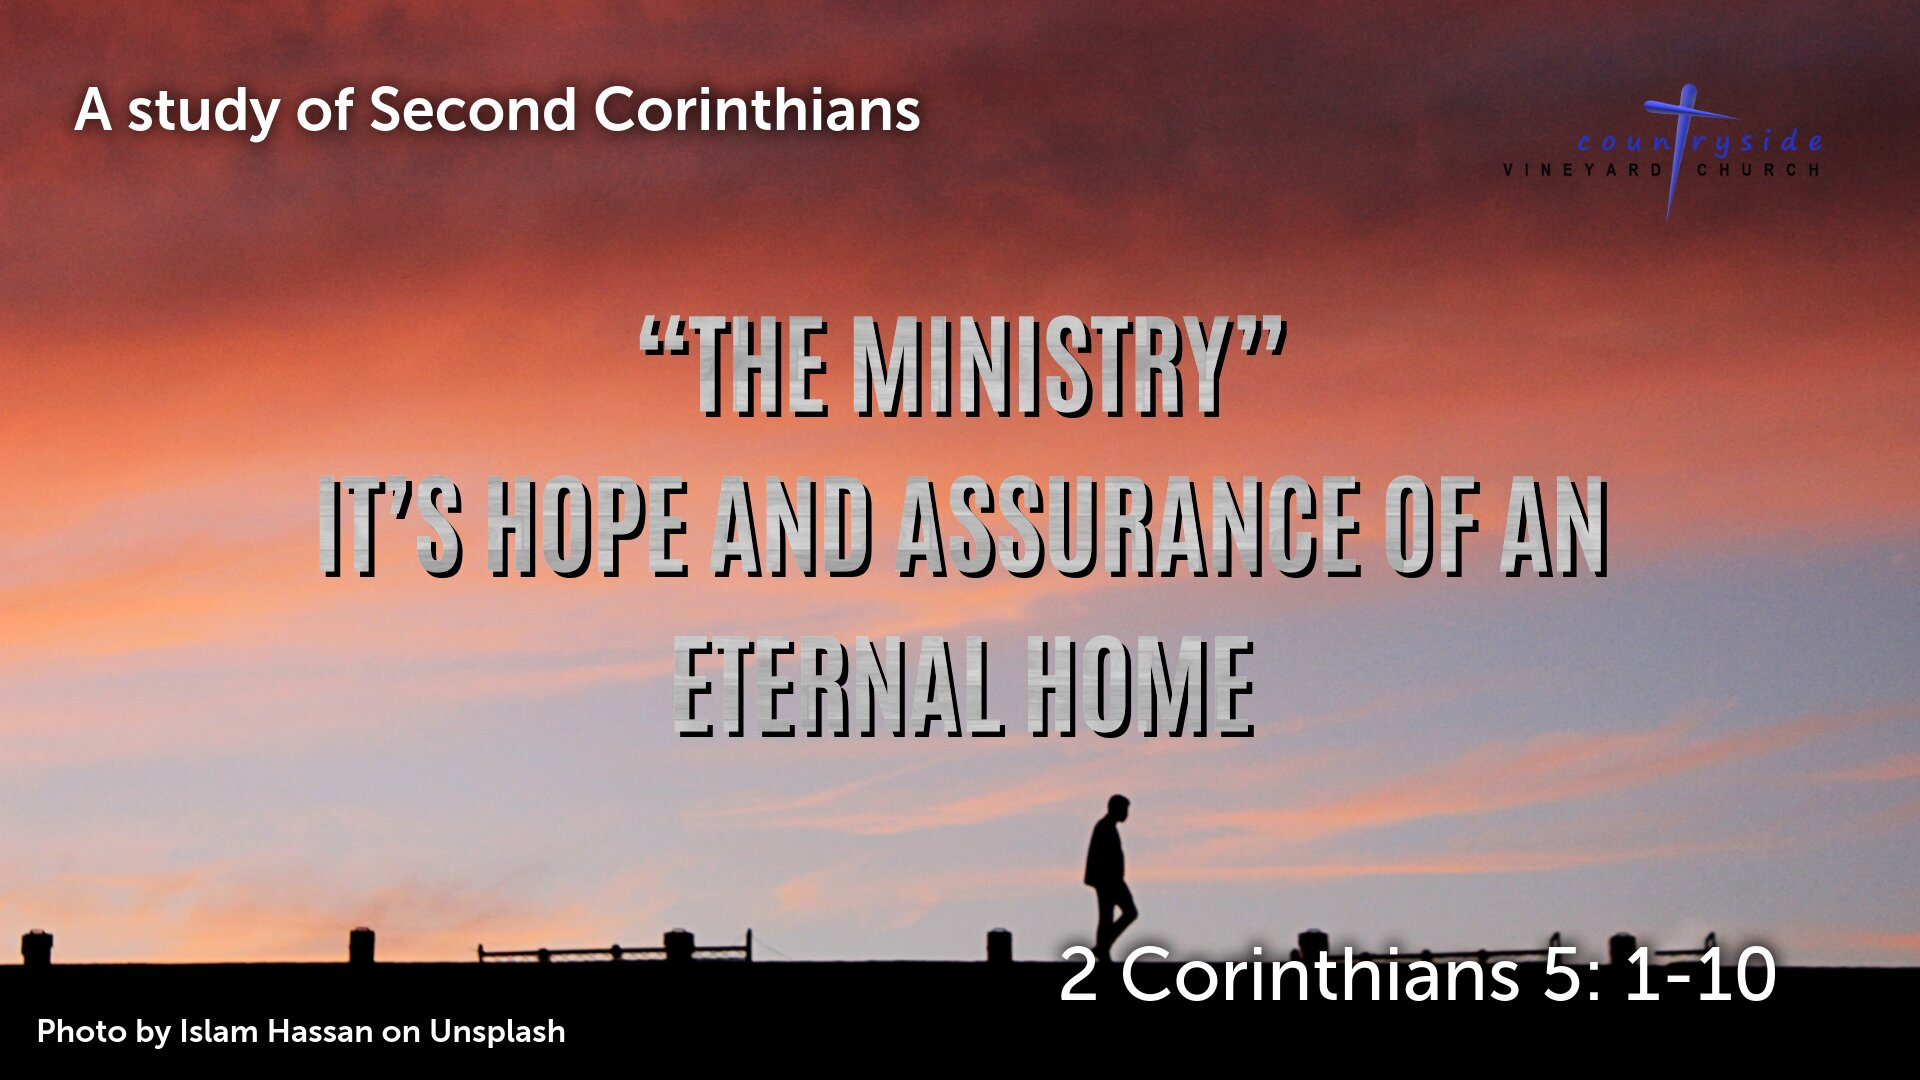 The Ministry - It's Hope and Assurance of an Eternal Home